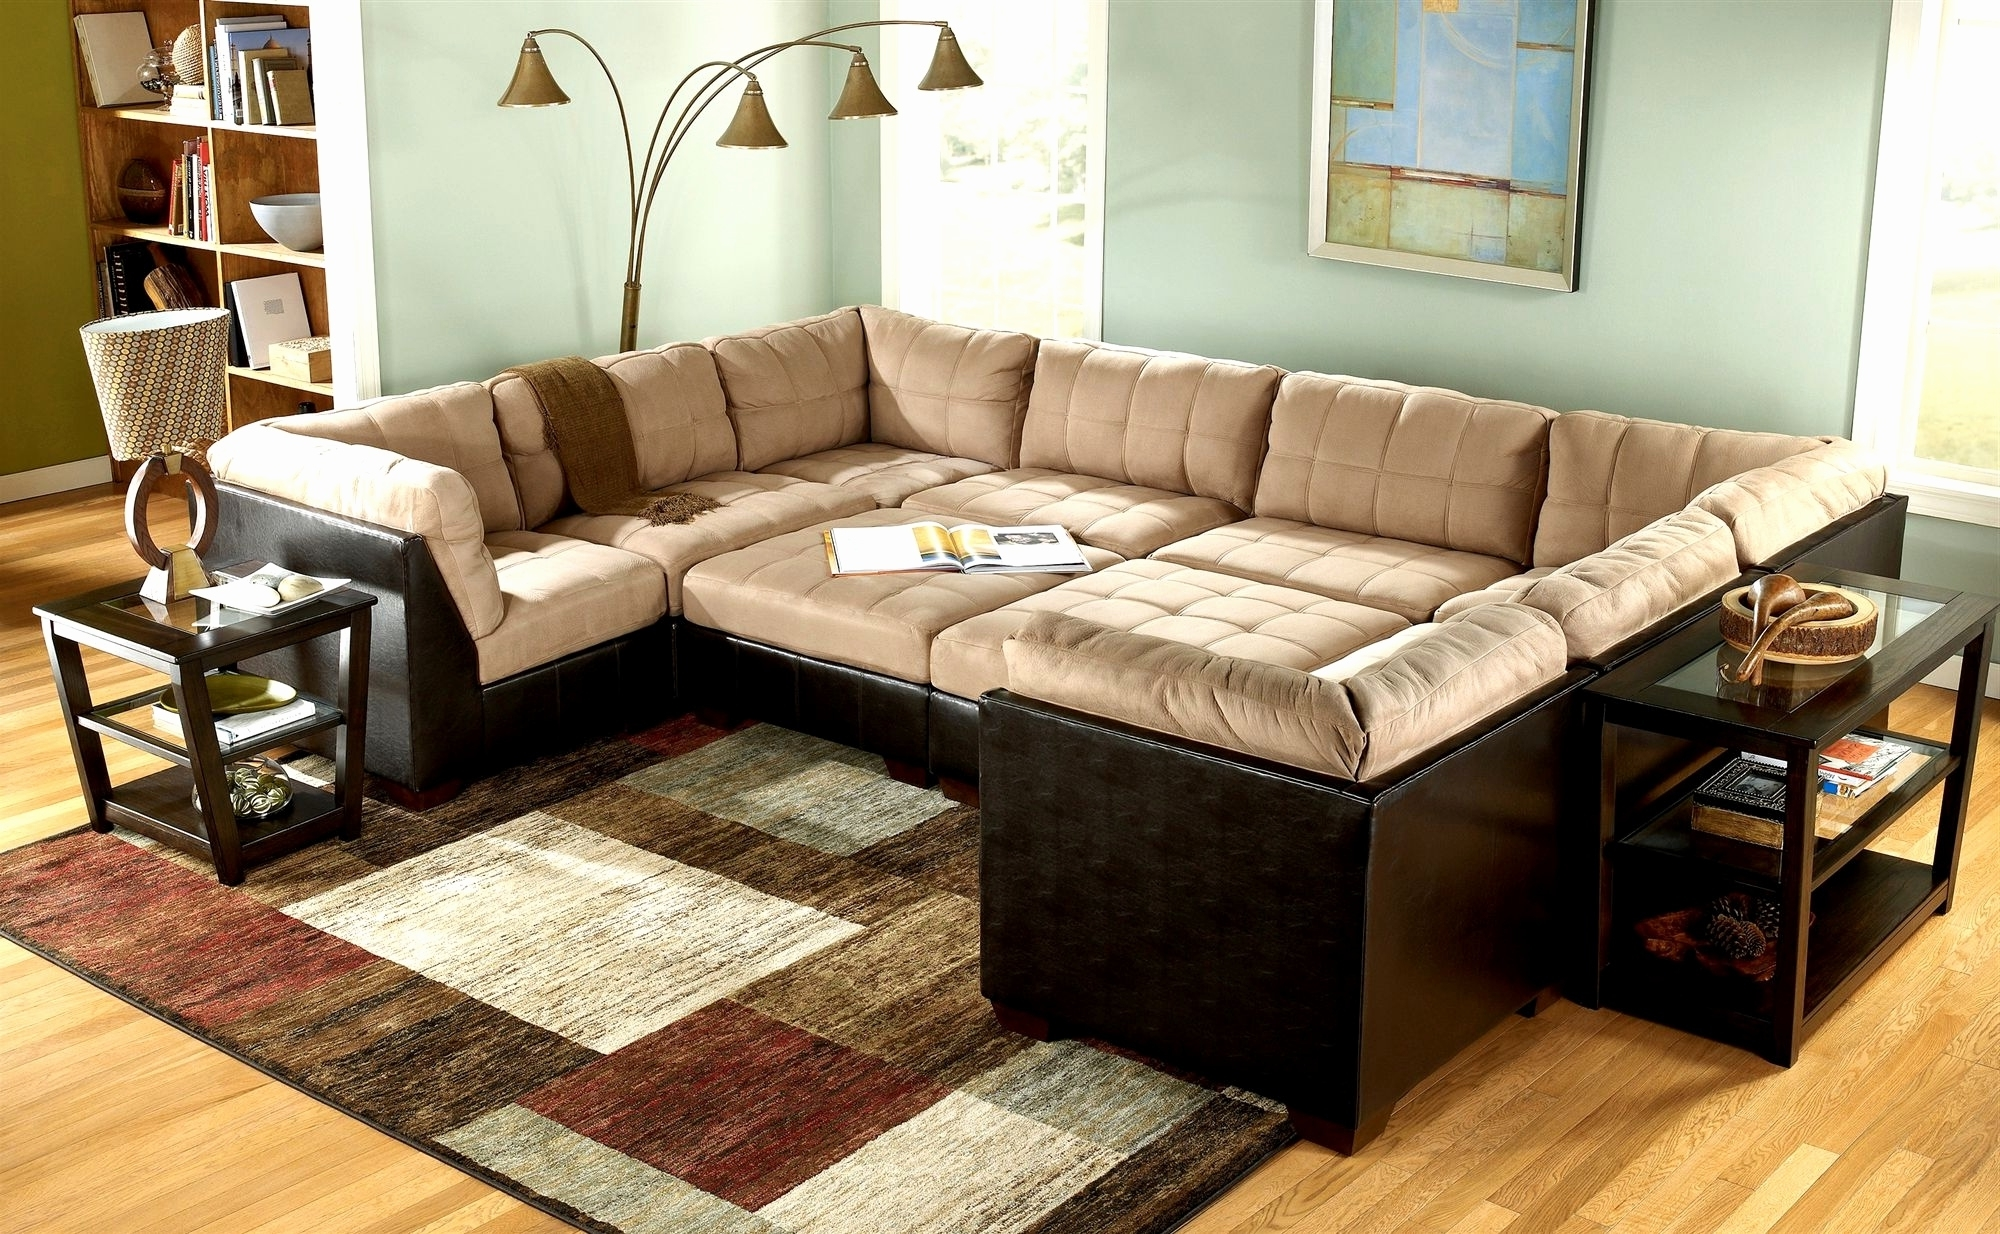 Widely Used Unique Sectional Sofas For Furniture : Extra Wide Sofa Awesome Deep Seated Sofa Sectional (View 13 of 15)